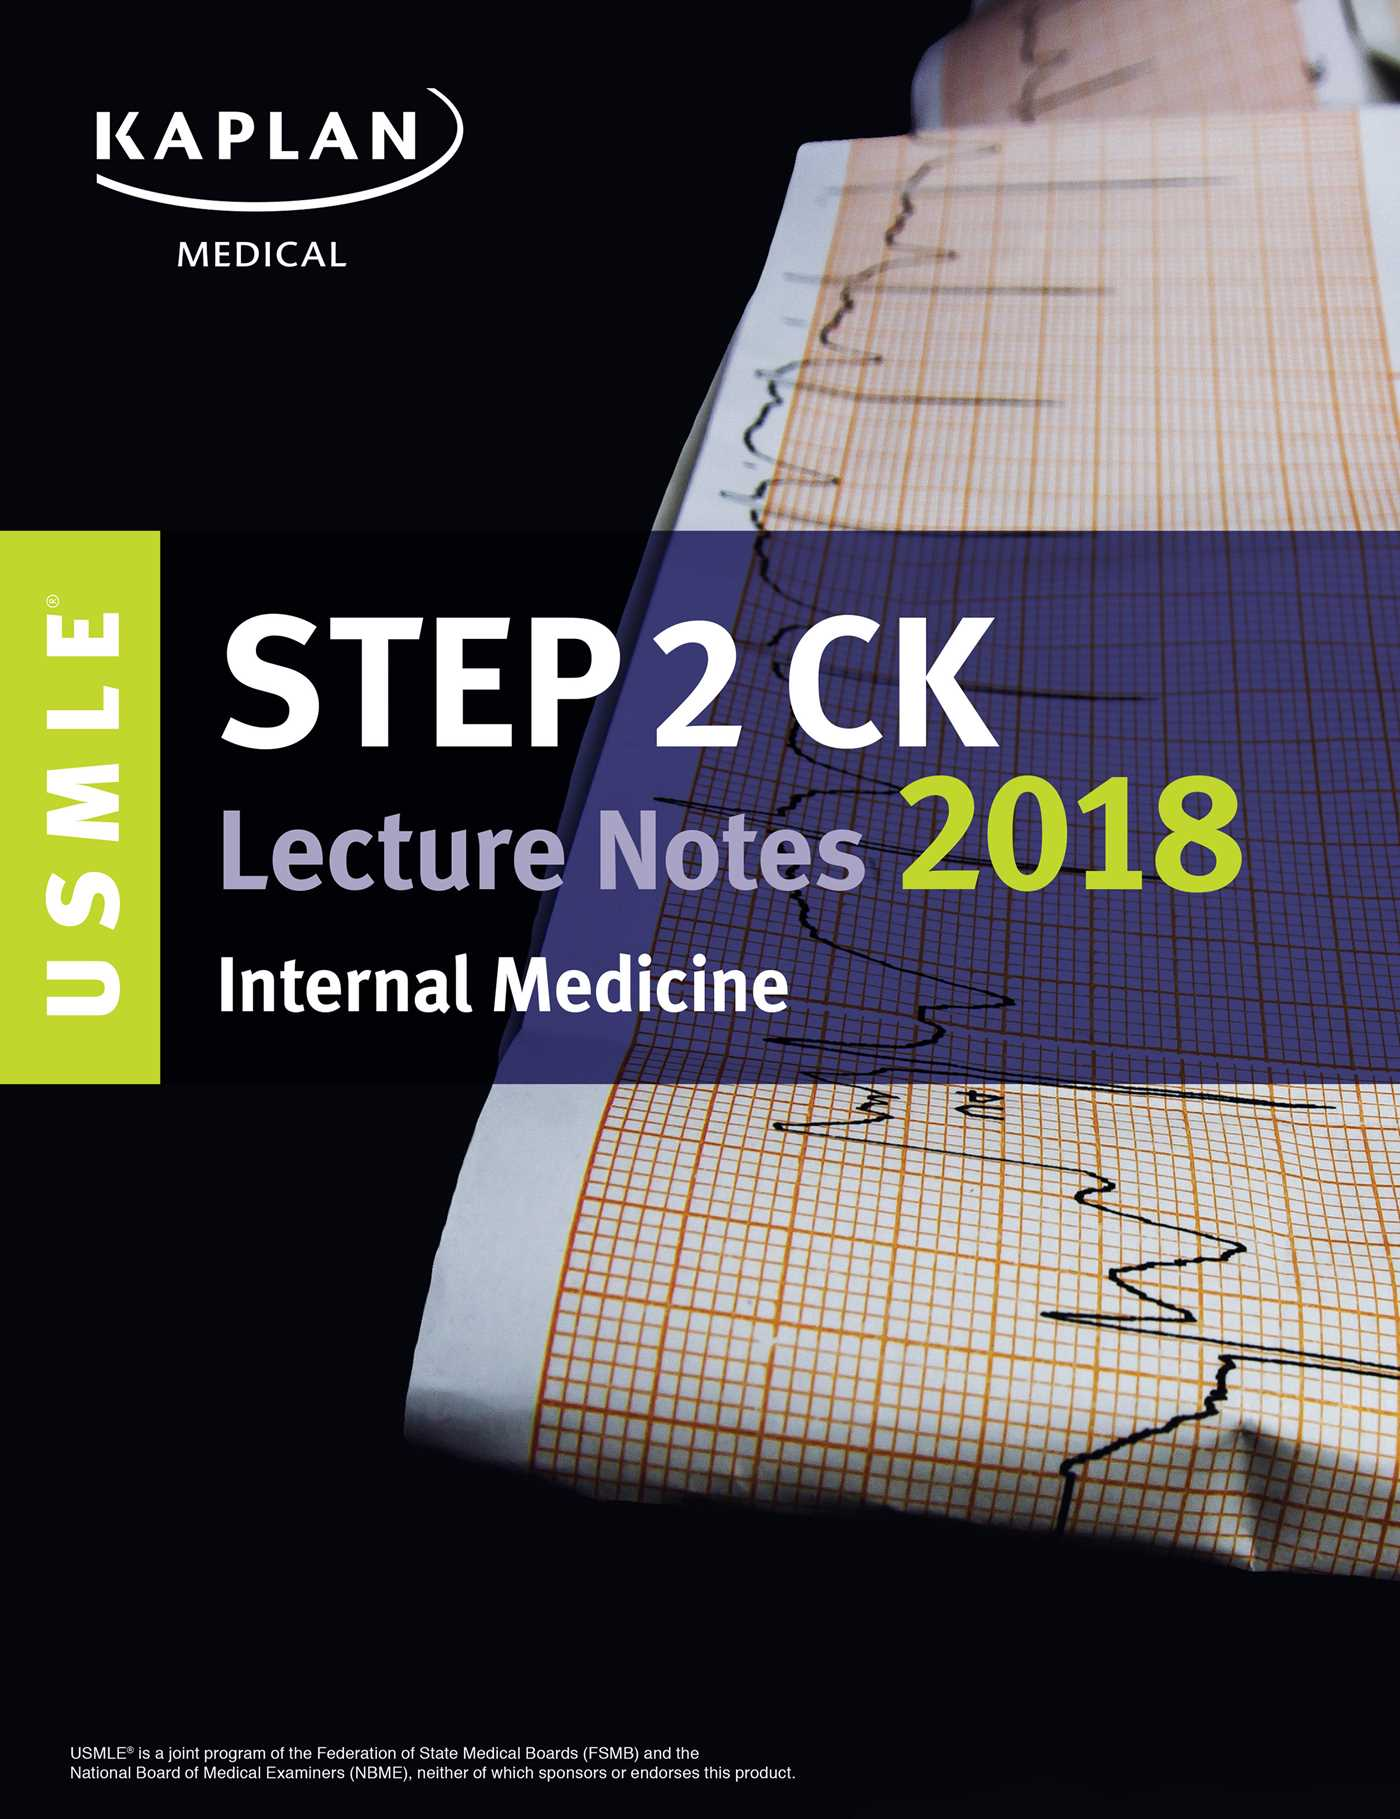 usmle-step-2-ck-lecture-notes-2018-internal-medicine